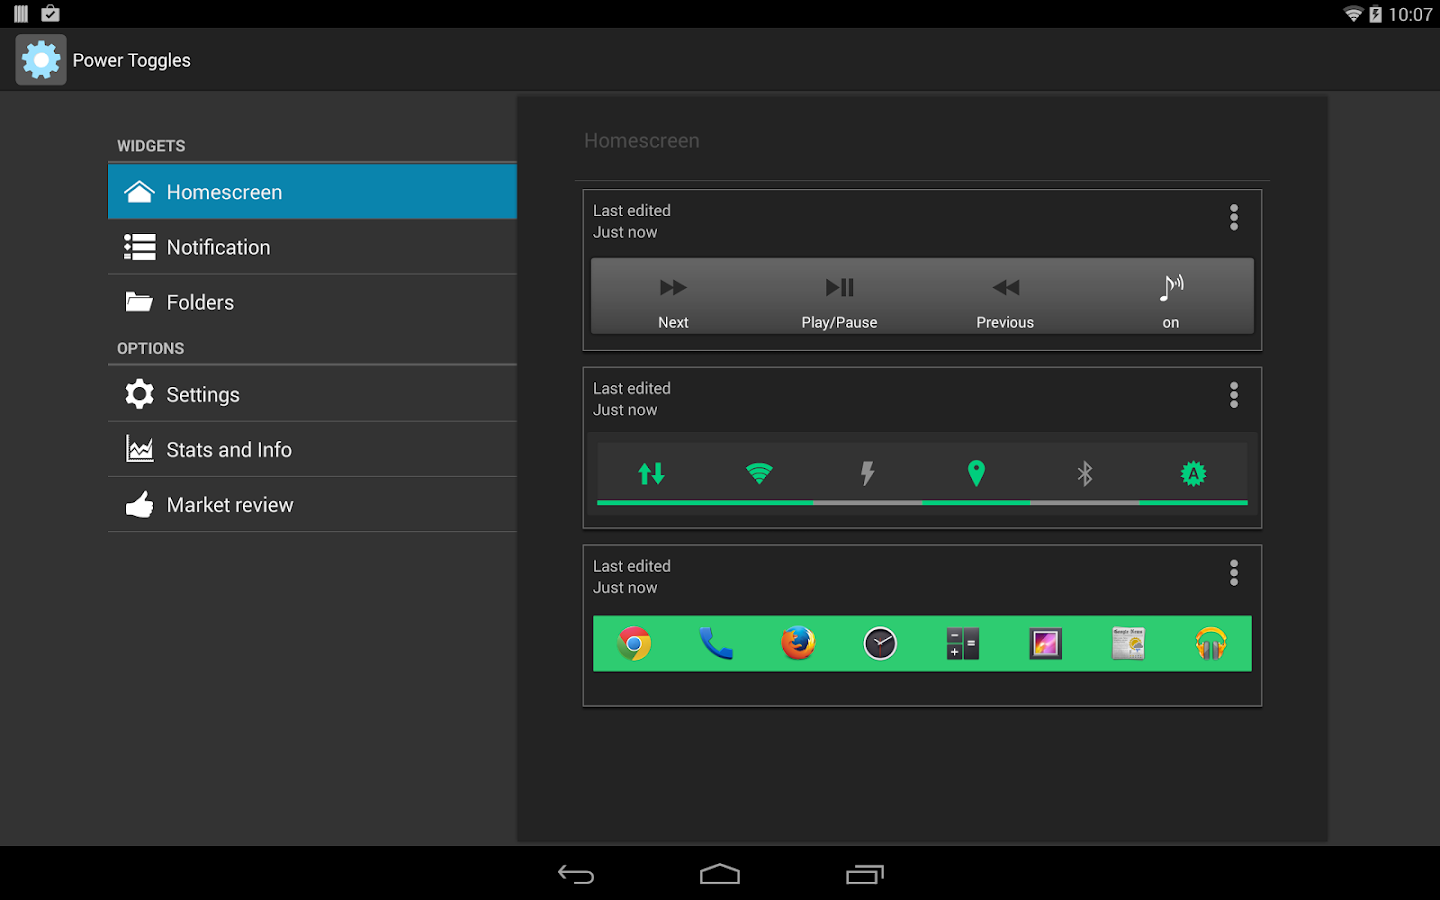 Power Toggles APK Download - Android Tools Apps